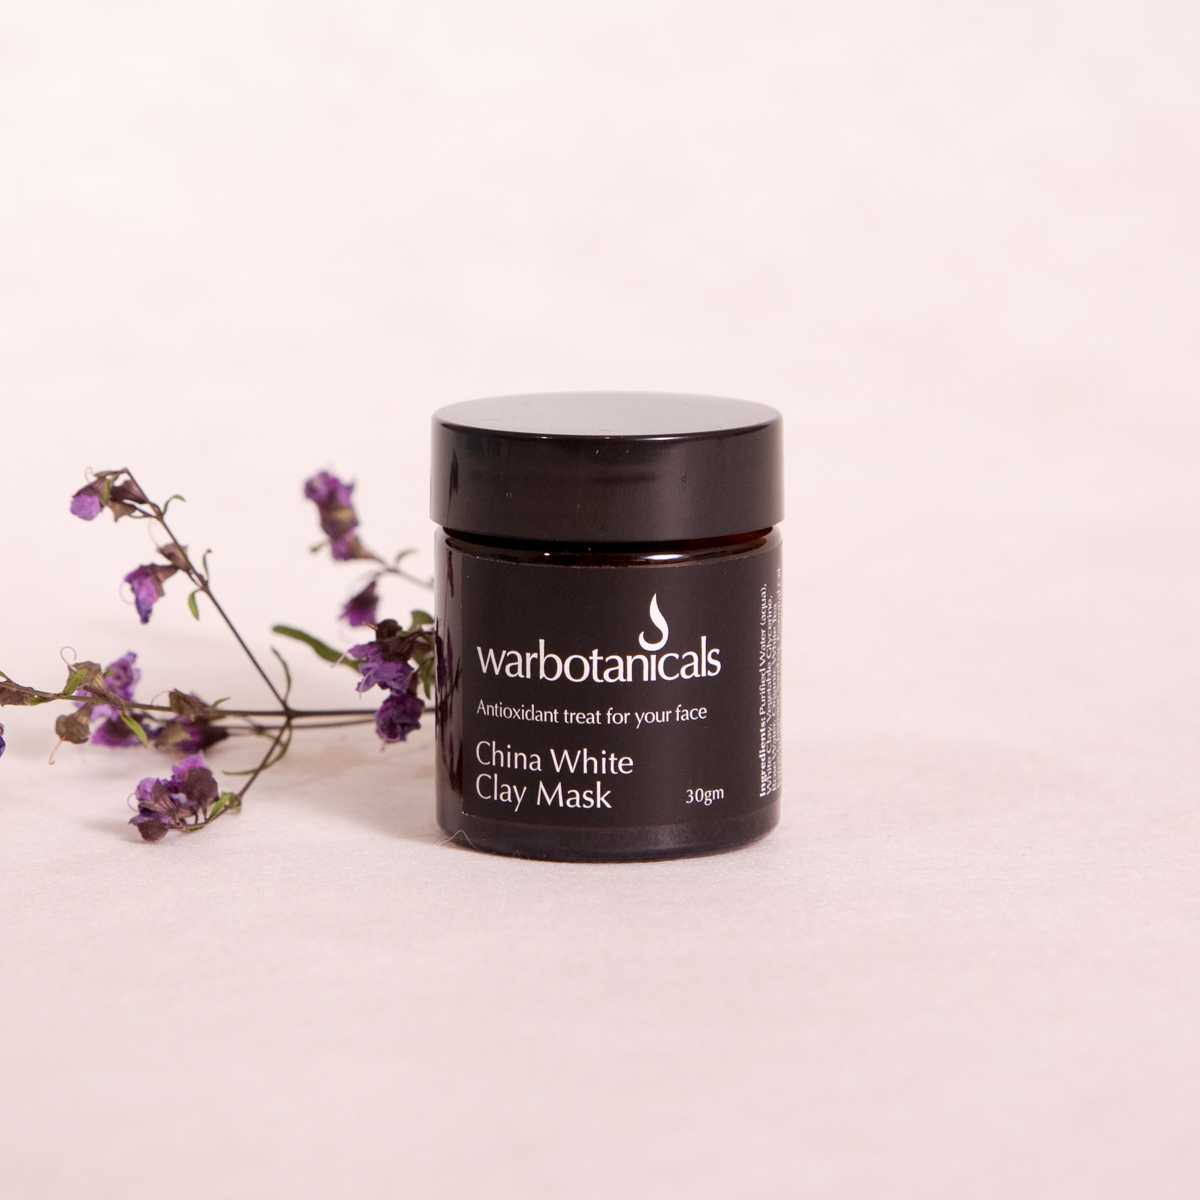 China White Clay Mask - 30gm - Clay Mask - Throw Some Seeds - Australian gardening gifts and eco products online!